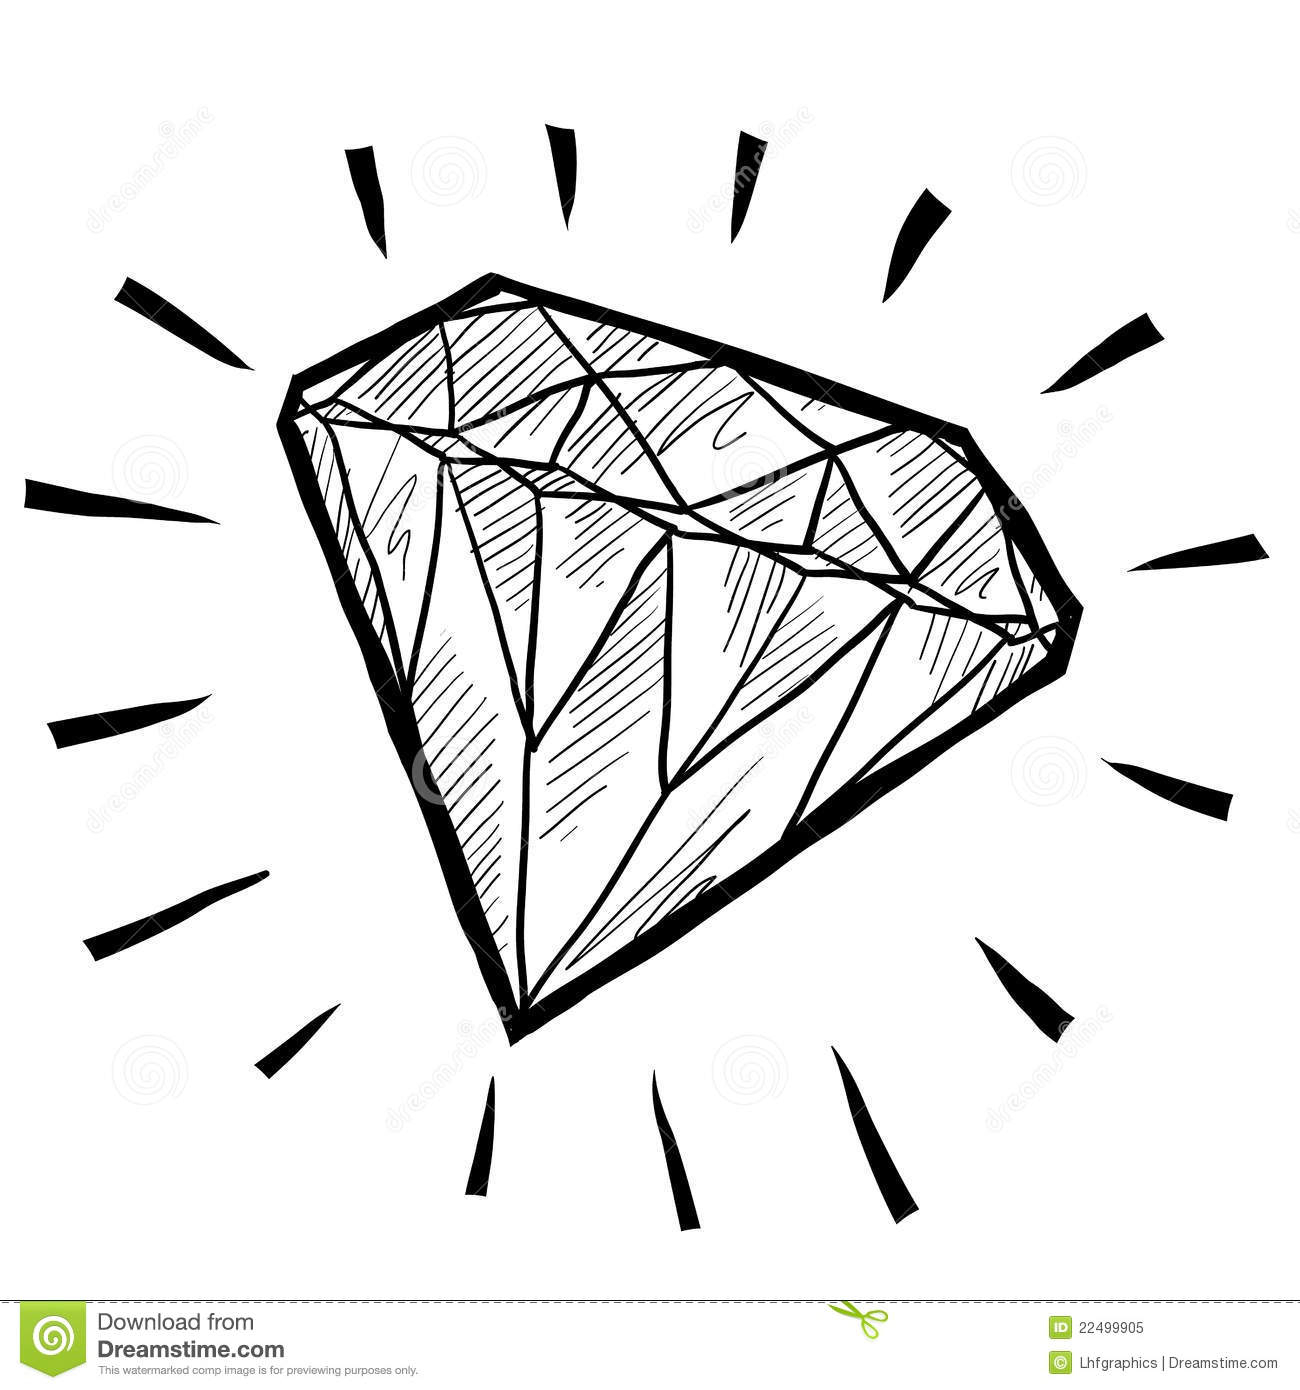 cartoon diamond drawing at paintingvalle 870977 png images pngio cartoon diamond drawing at